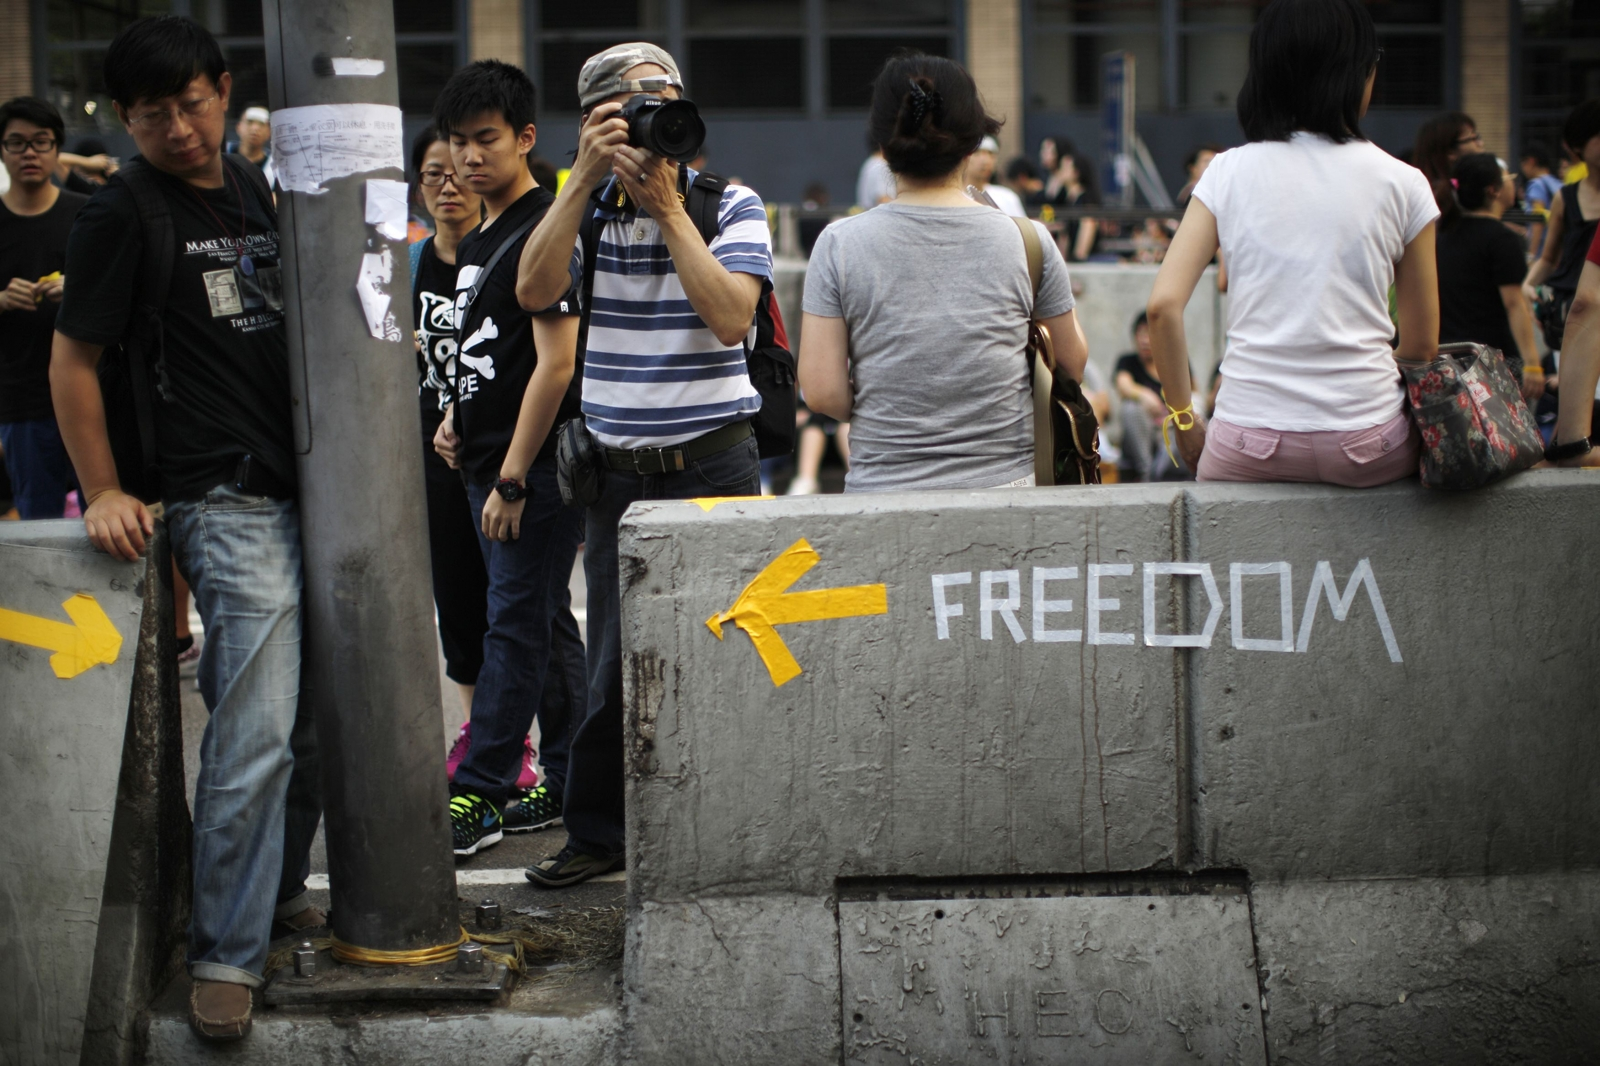 Hong Kong Protest Organiser Apologises for Disruption